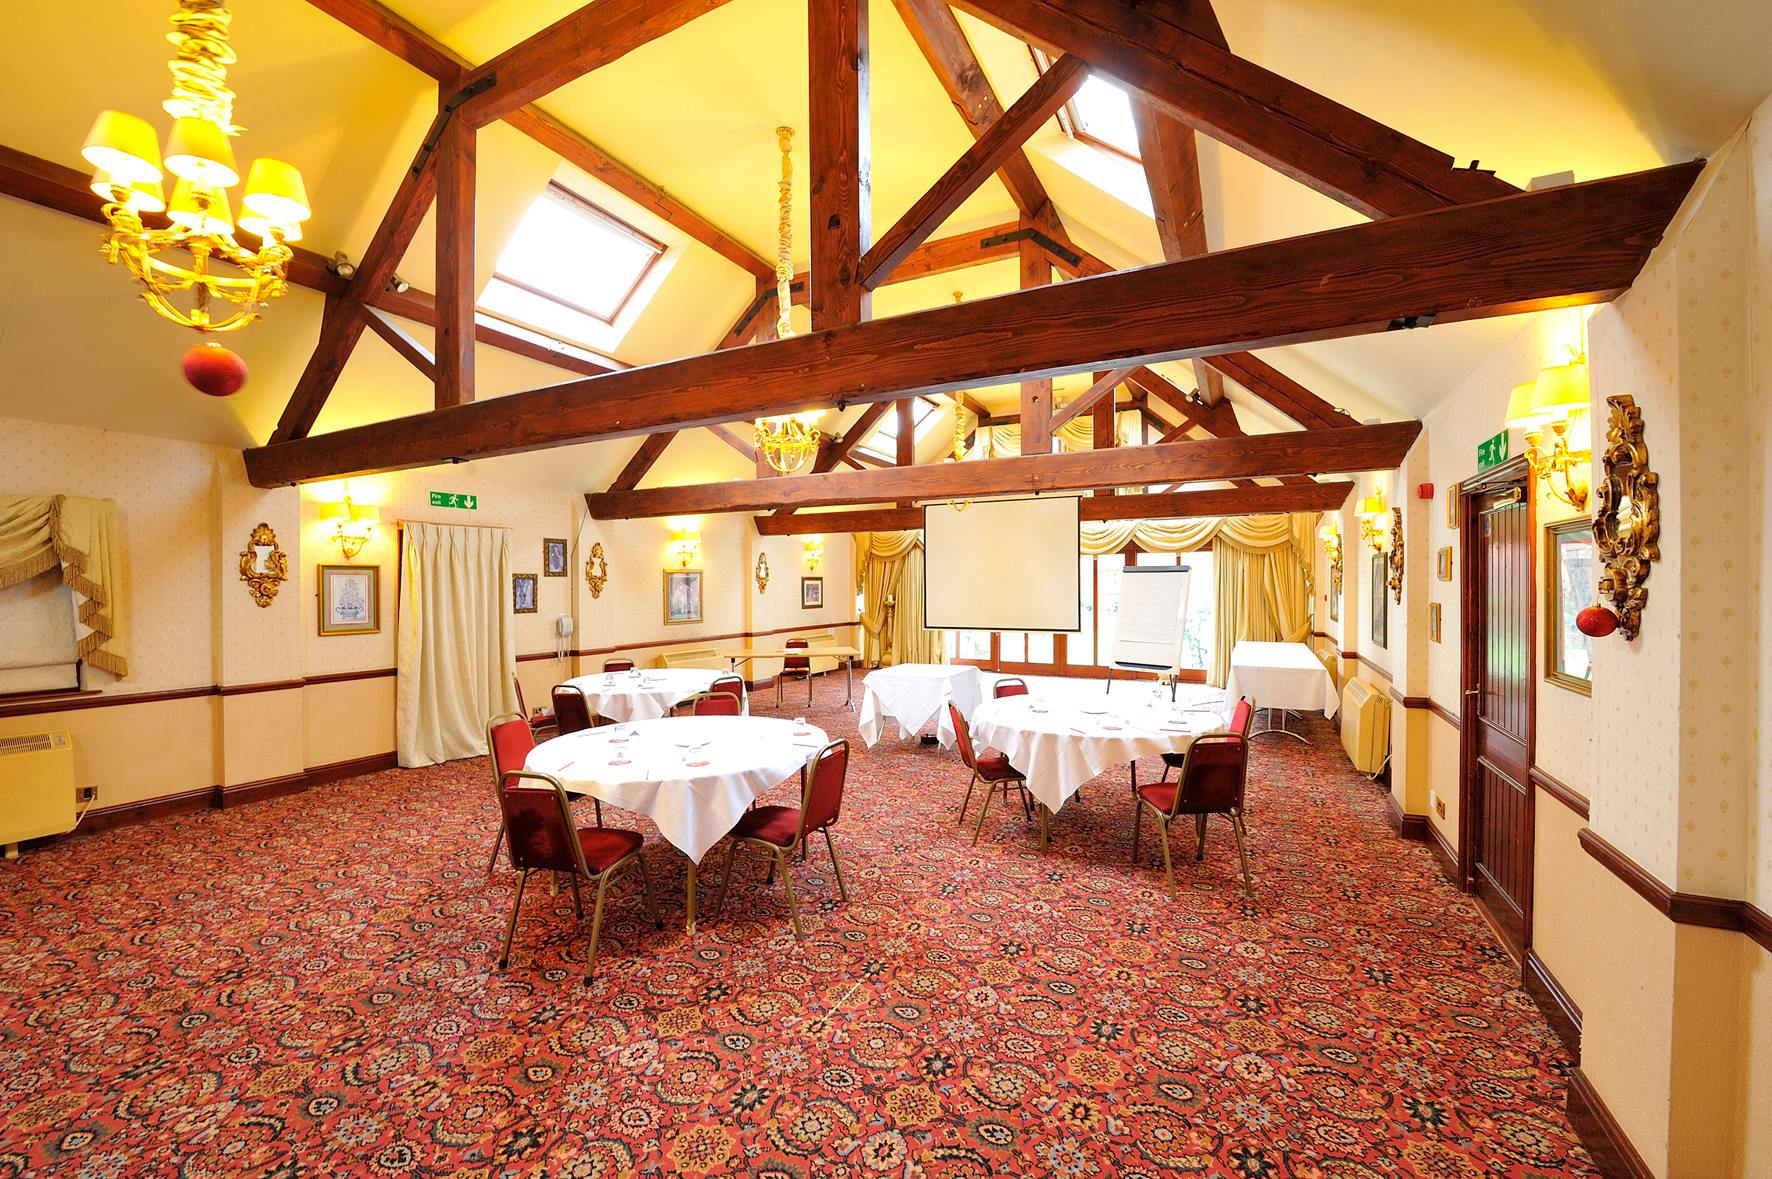 Conferences - The Olde Barn Hotel